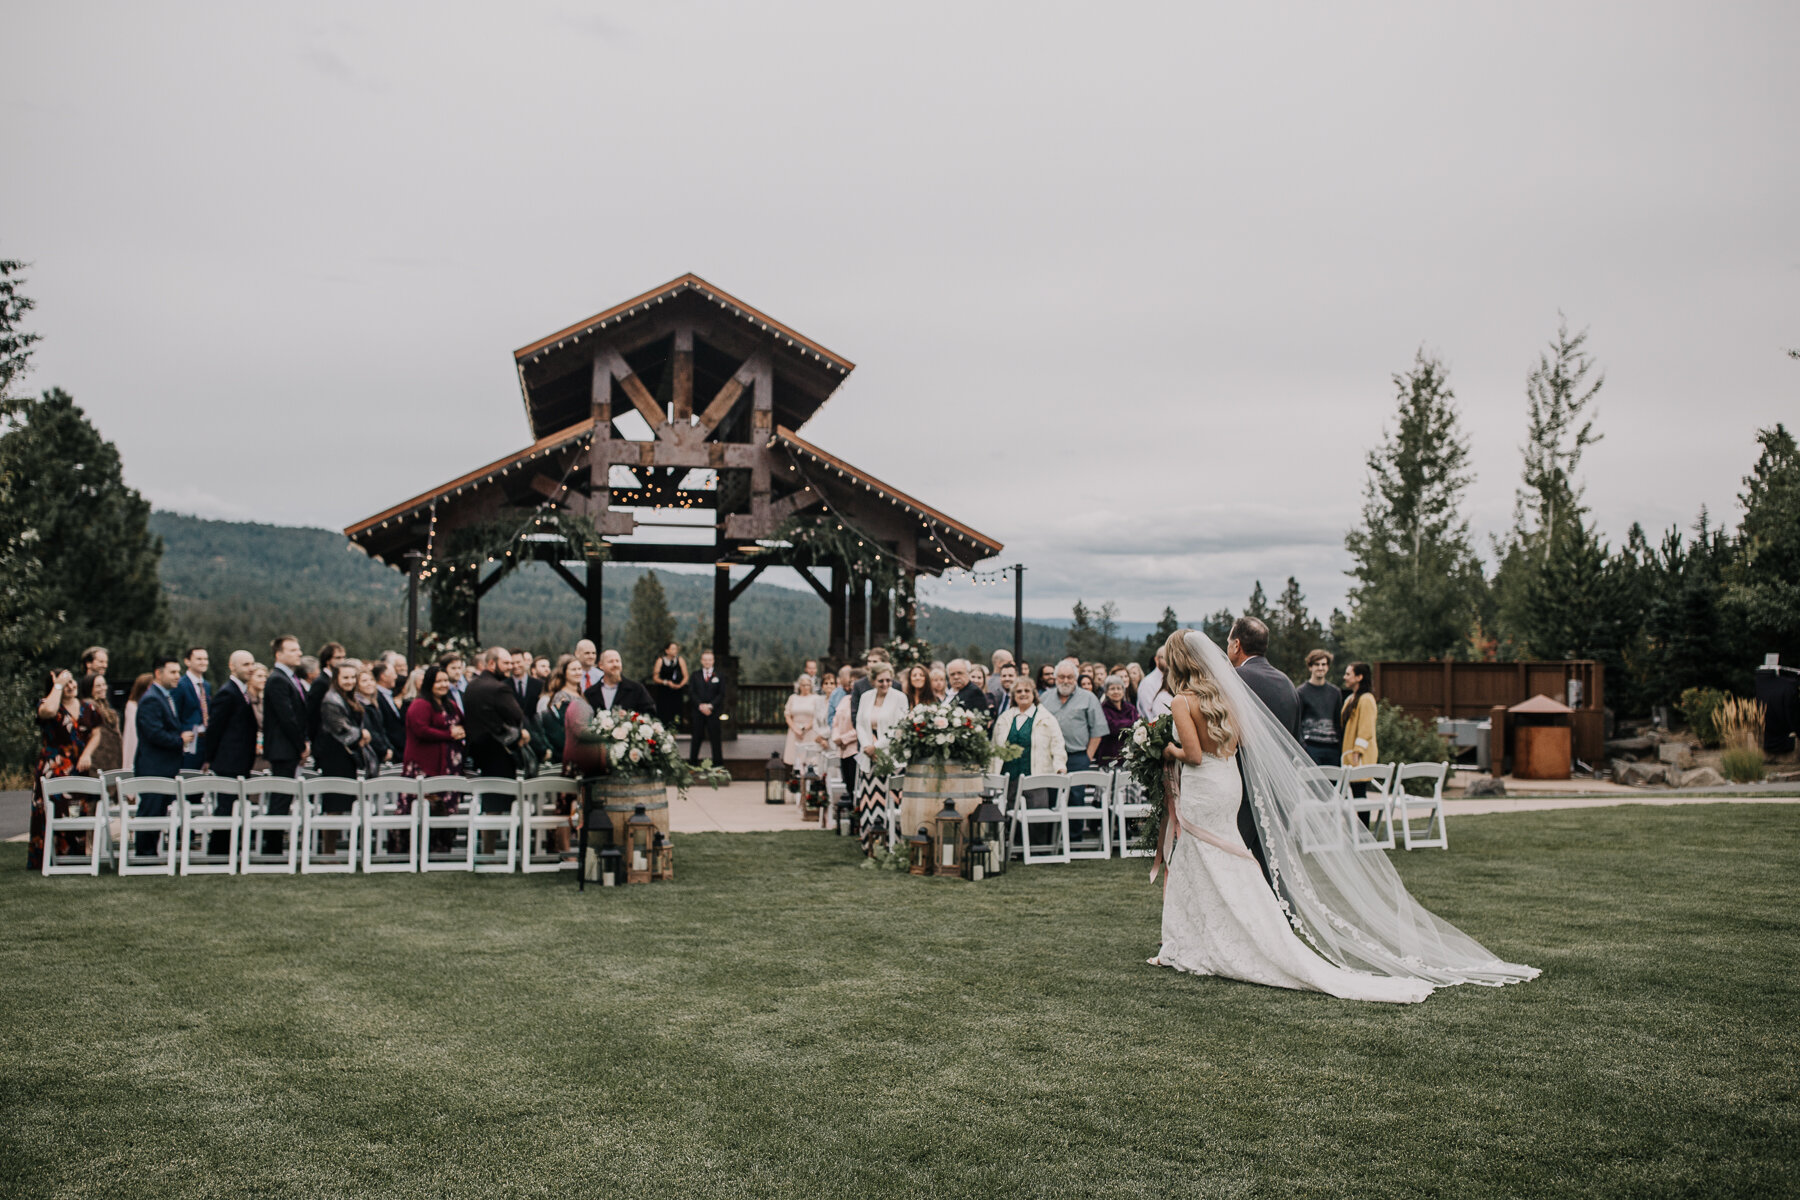 0675Swiftwater Cellars Wedding_Cle Elum Wedding_Montana Wedding Photographer_Kat & Kyle_September 15, 2018-60.jpg